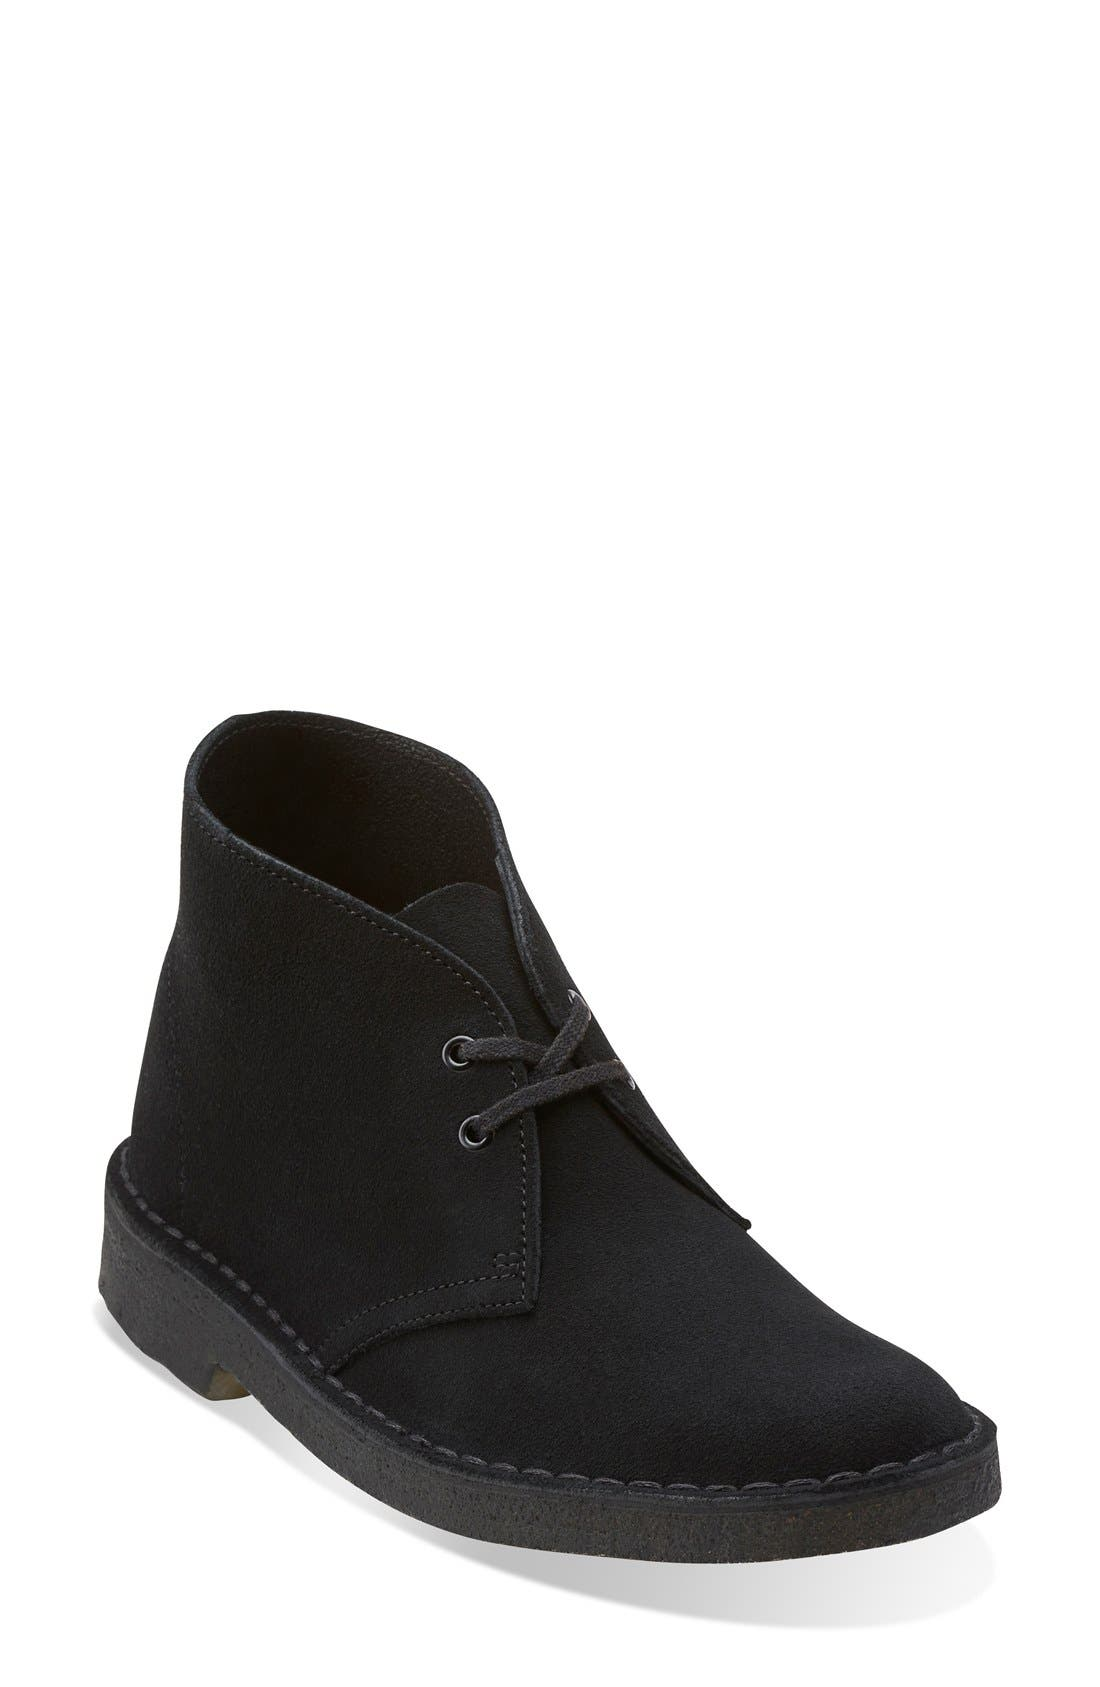 'Desert' Chukka Boot,                         Main,                         color, 005